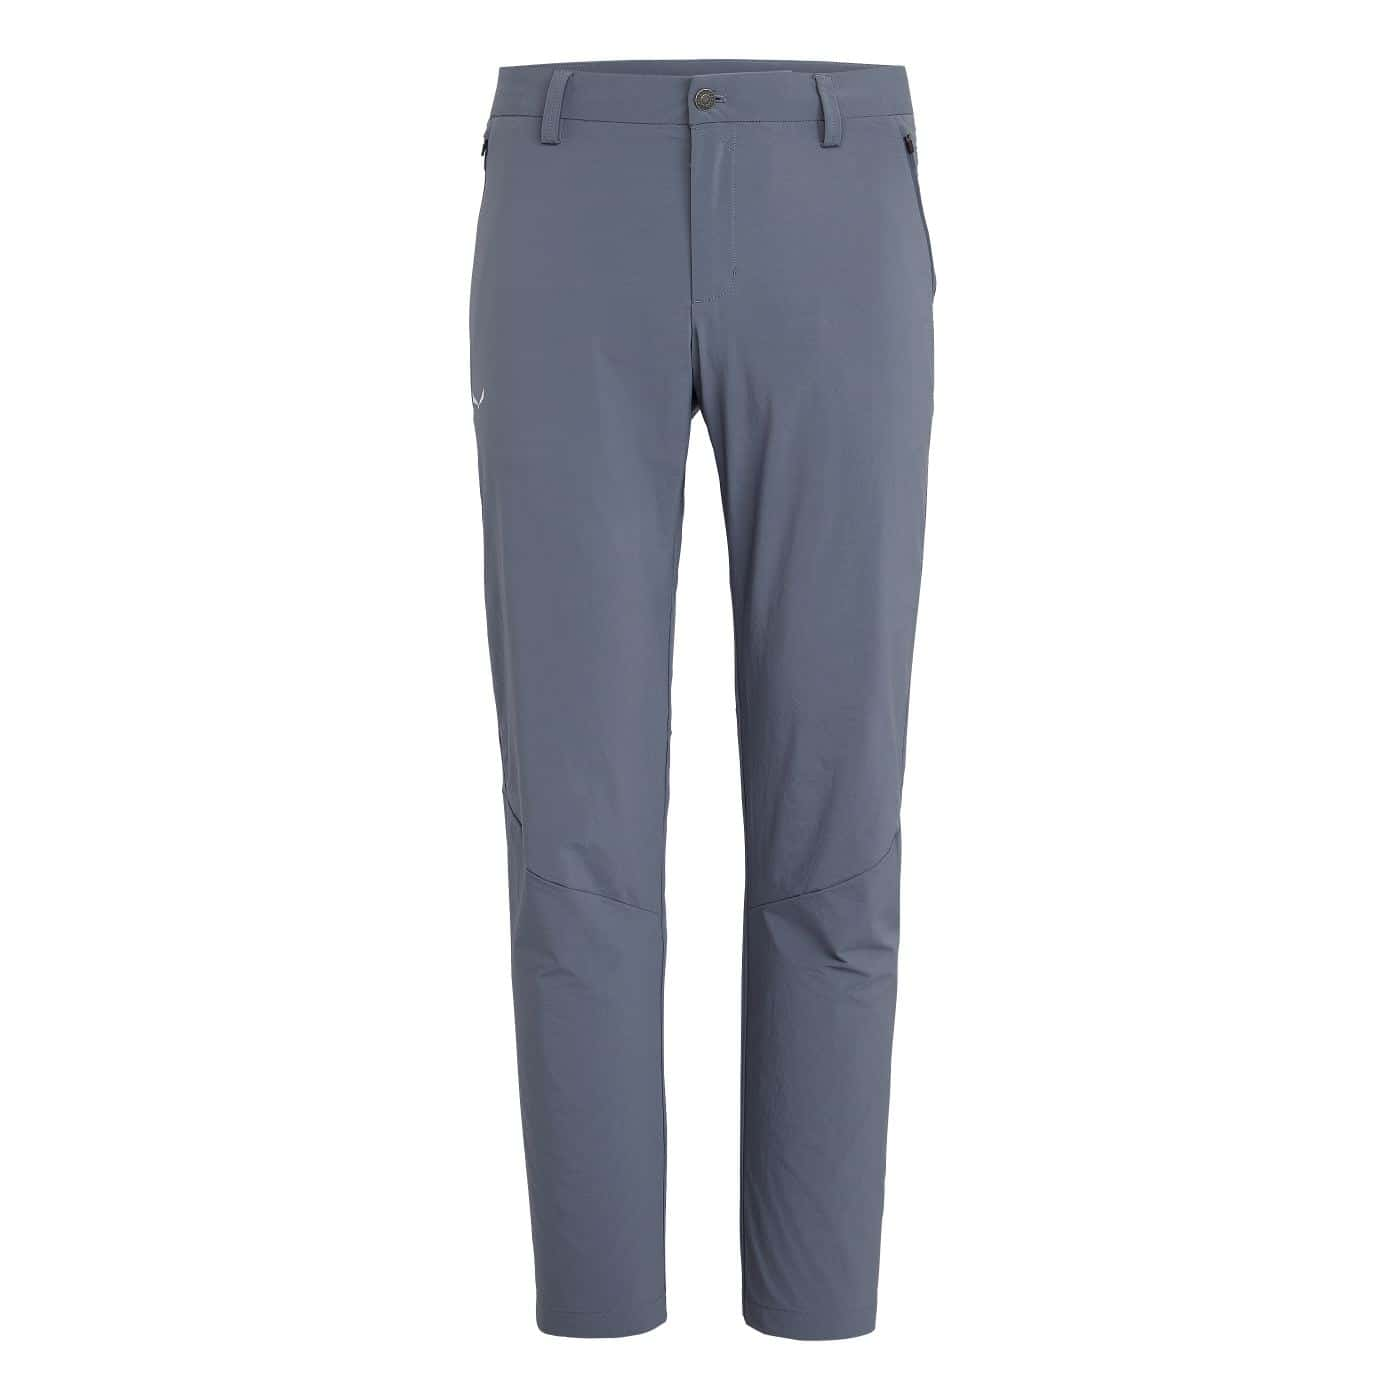 Salewa-Puez 2 DST Regular Pant - Men's